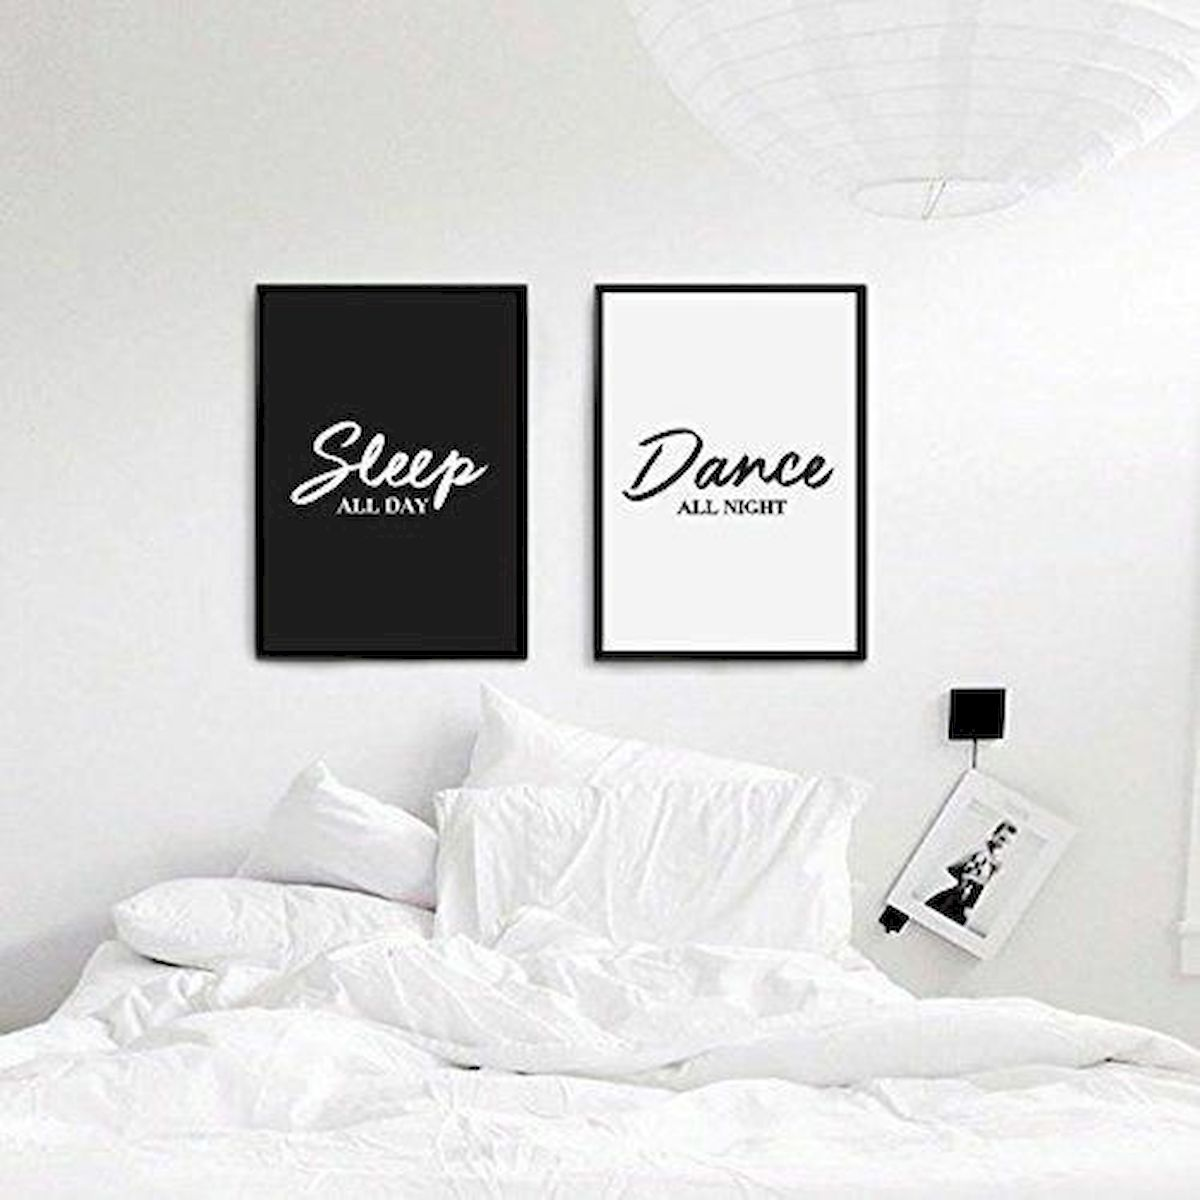 70 Simple Wall Bedroom Decor and Design Ideas (23)